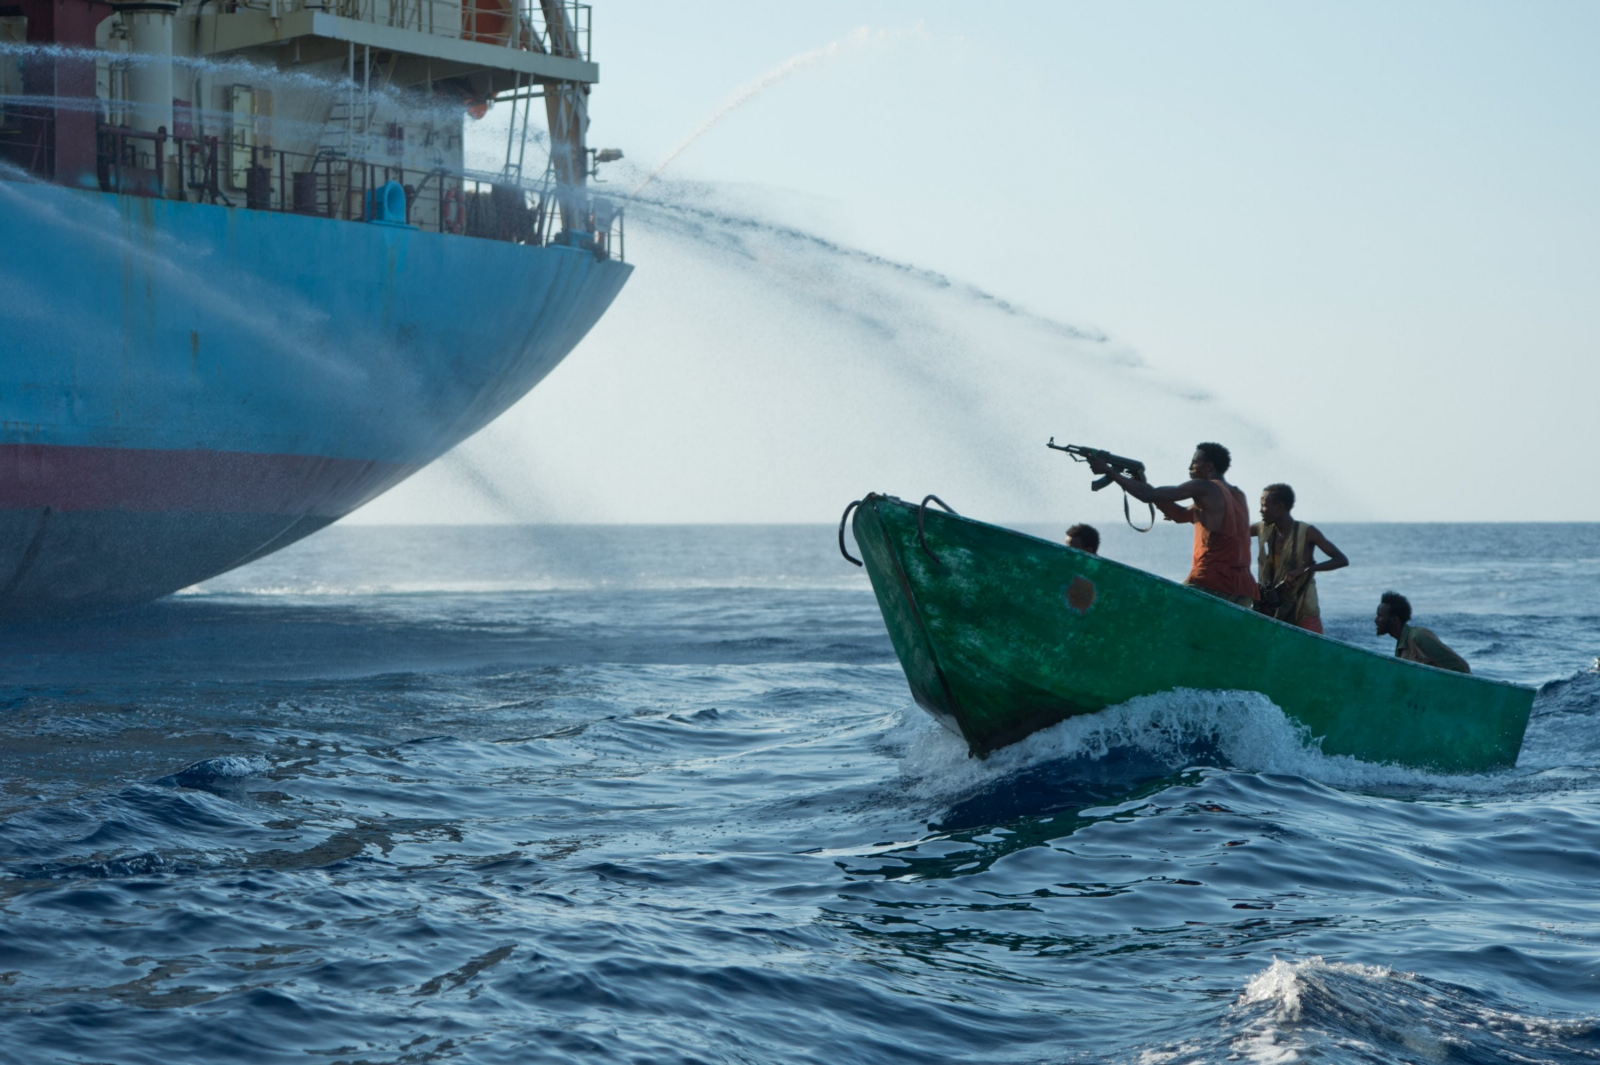 So The Somali Fisherman Finally Began Taking Arms To Stop These Foreign Ships Shenanigans Eventually This Turned Into Hijacking Boats For Ransom Money